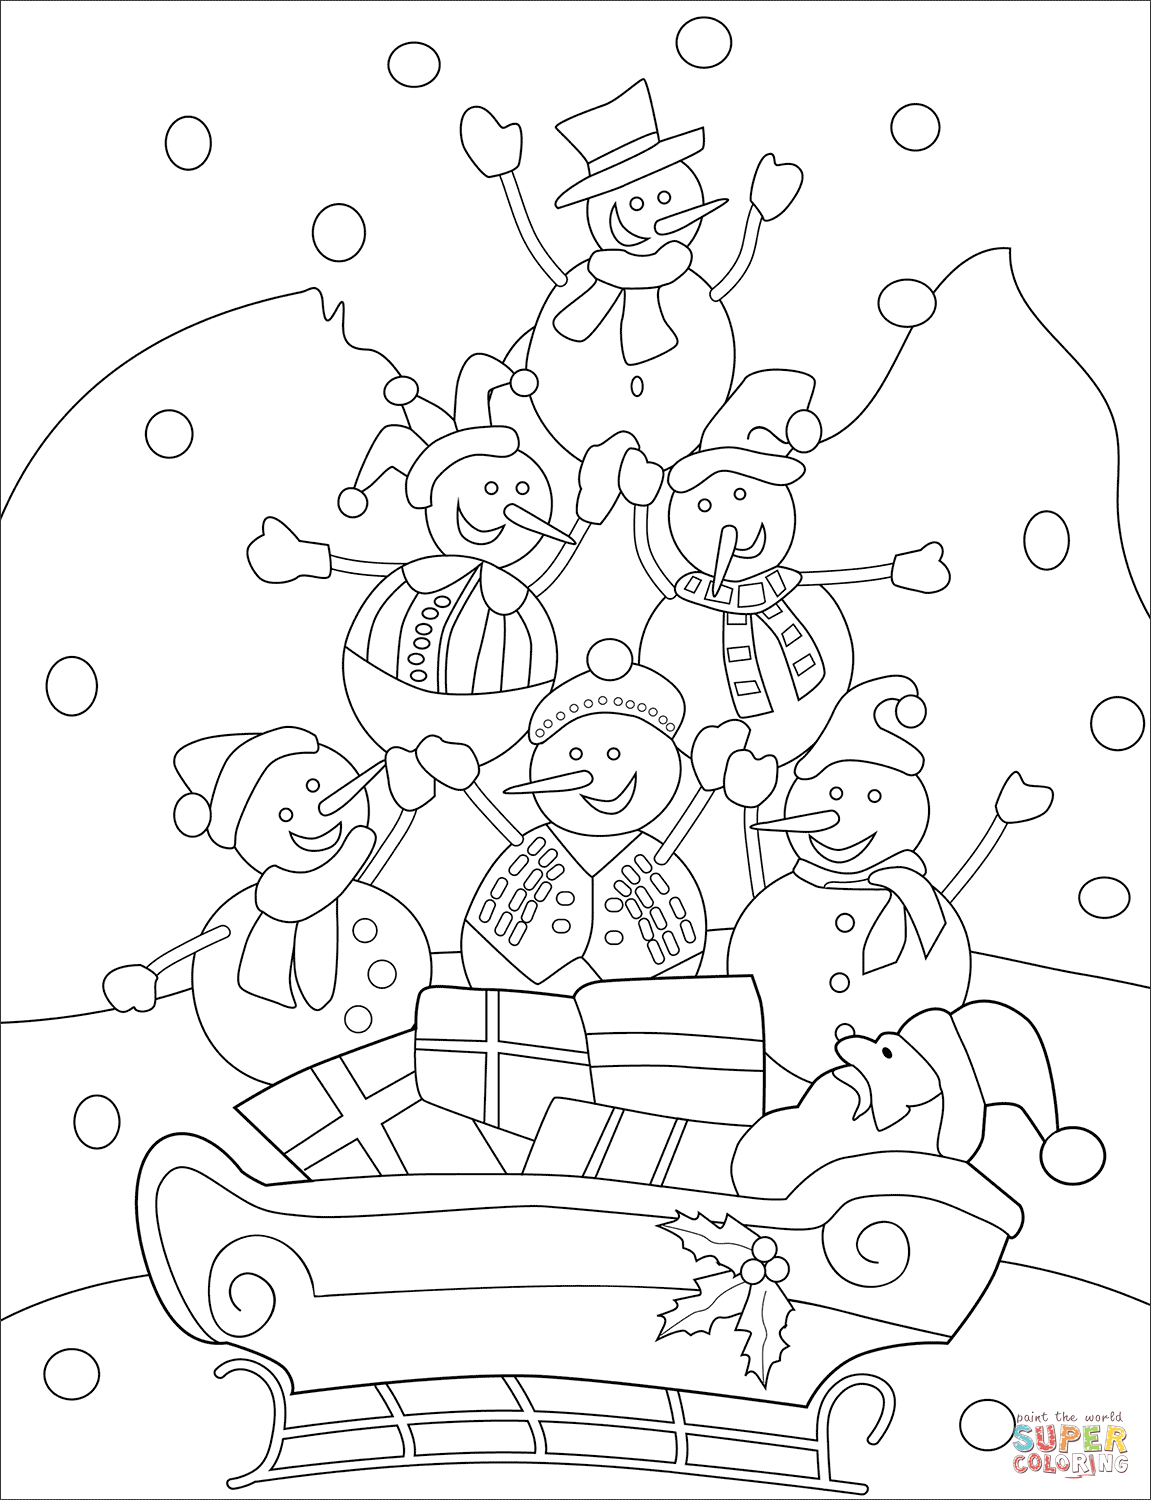 Snowmen with Santa on a Sled coloring page Free